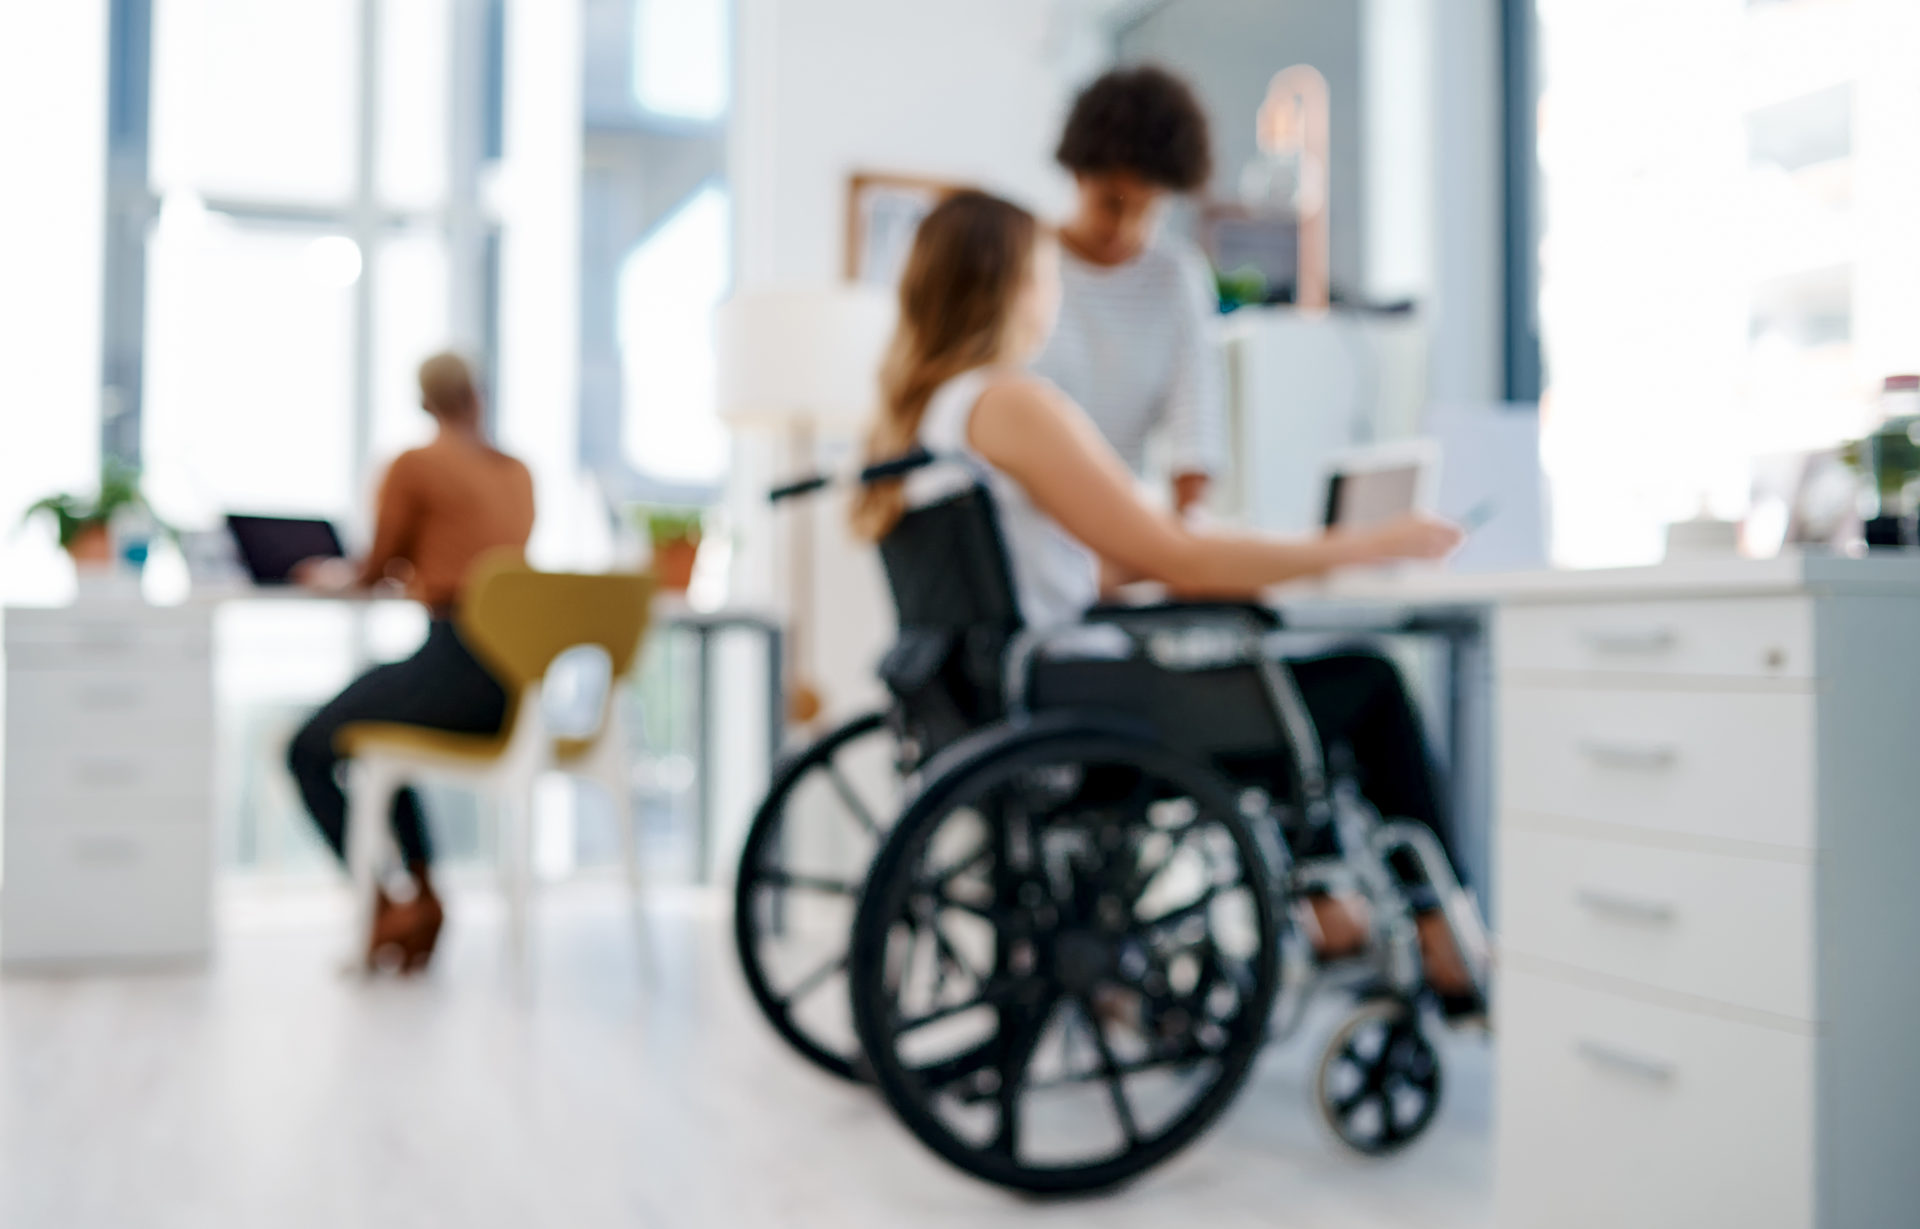 Picture of a f a business woman in a wheel chair working with colleagues in a modern office